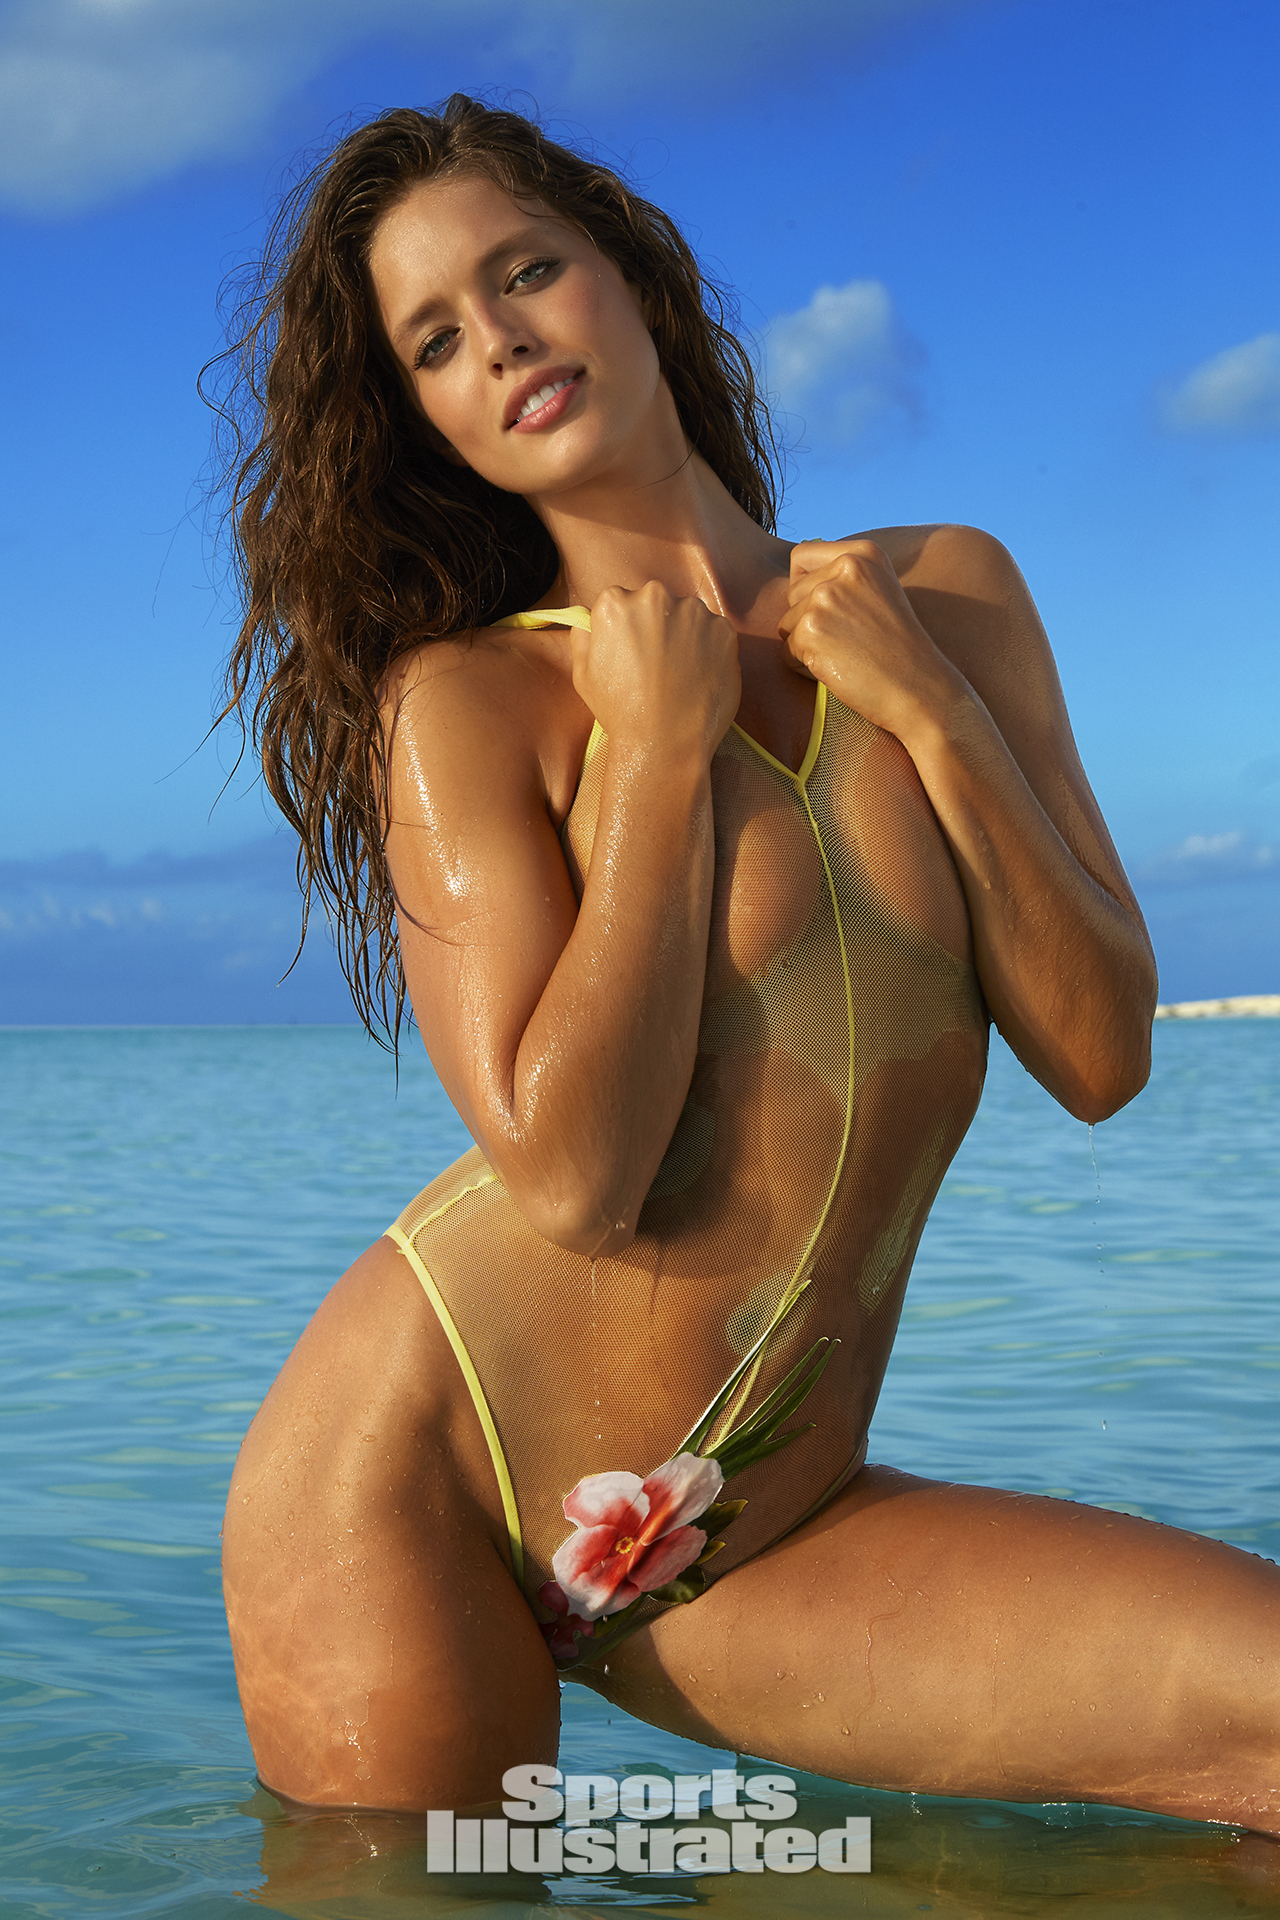 Emily DiDonato was photographed by James Macari in Turks & Caicos. Swimsuit by Soriya Swim.